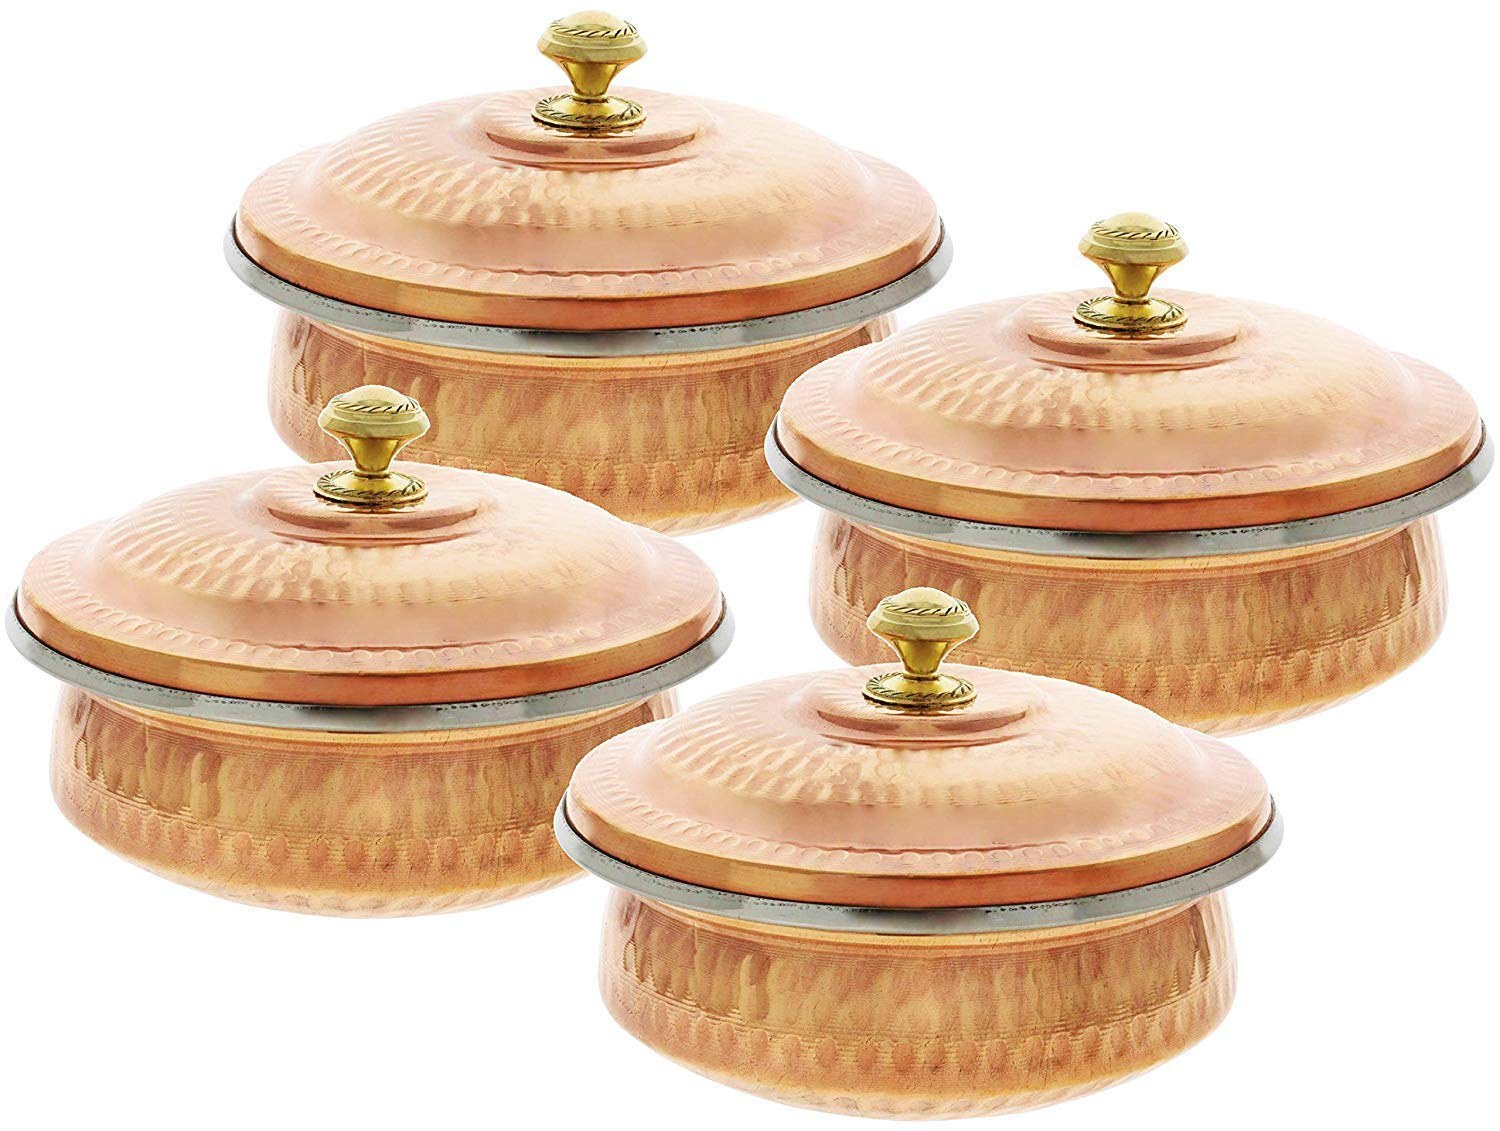 PARIJAT HANDICRAFT Copper Stainless Steel Soup, Cereal, Salad, Vegetable Serving Bowls Tureen - Set of 4 Capacity 14 Ounce Approx